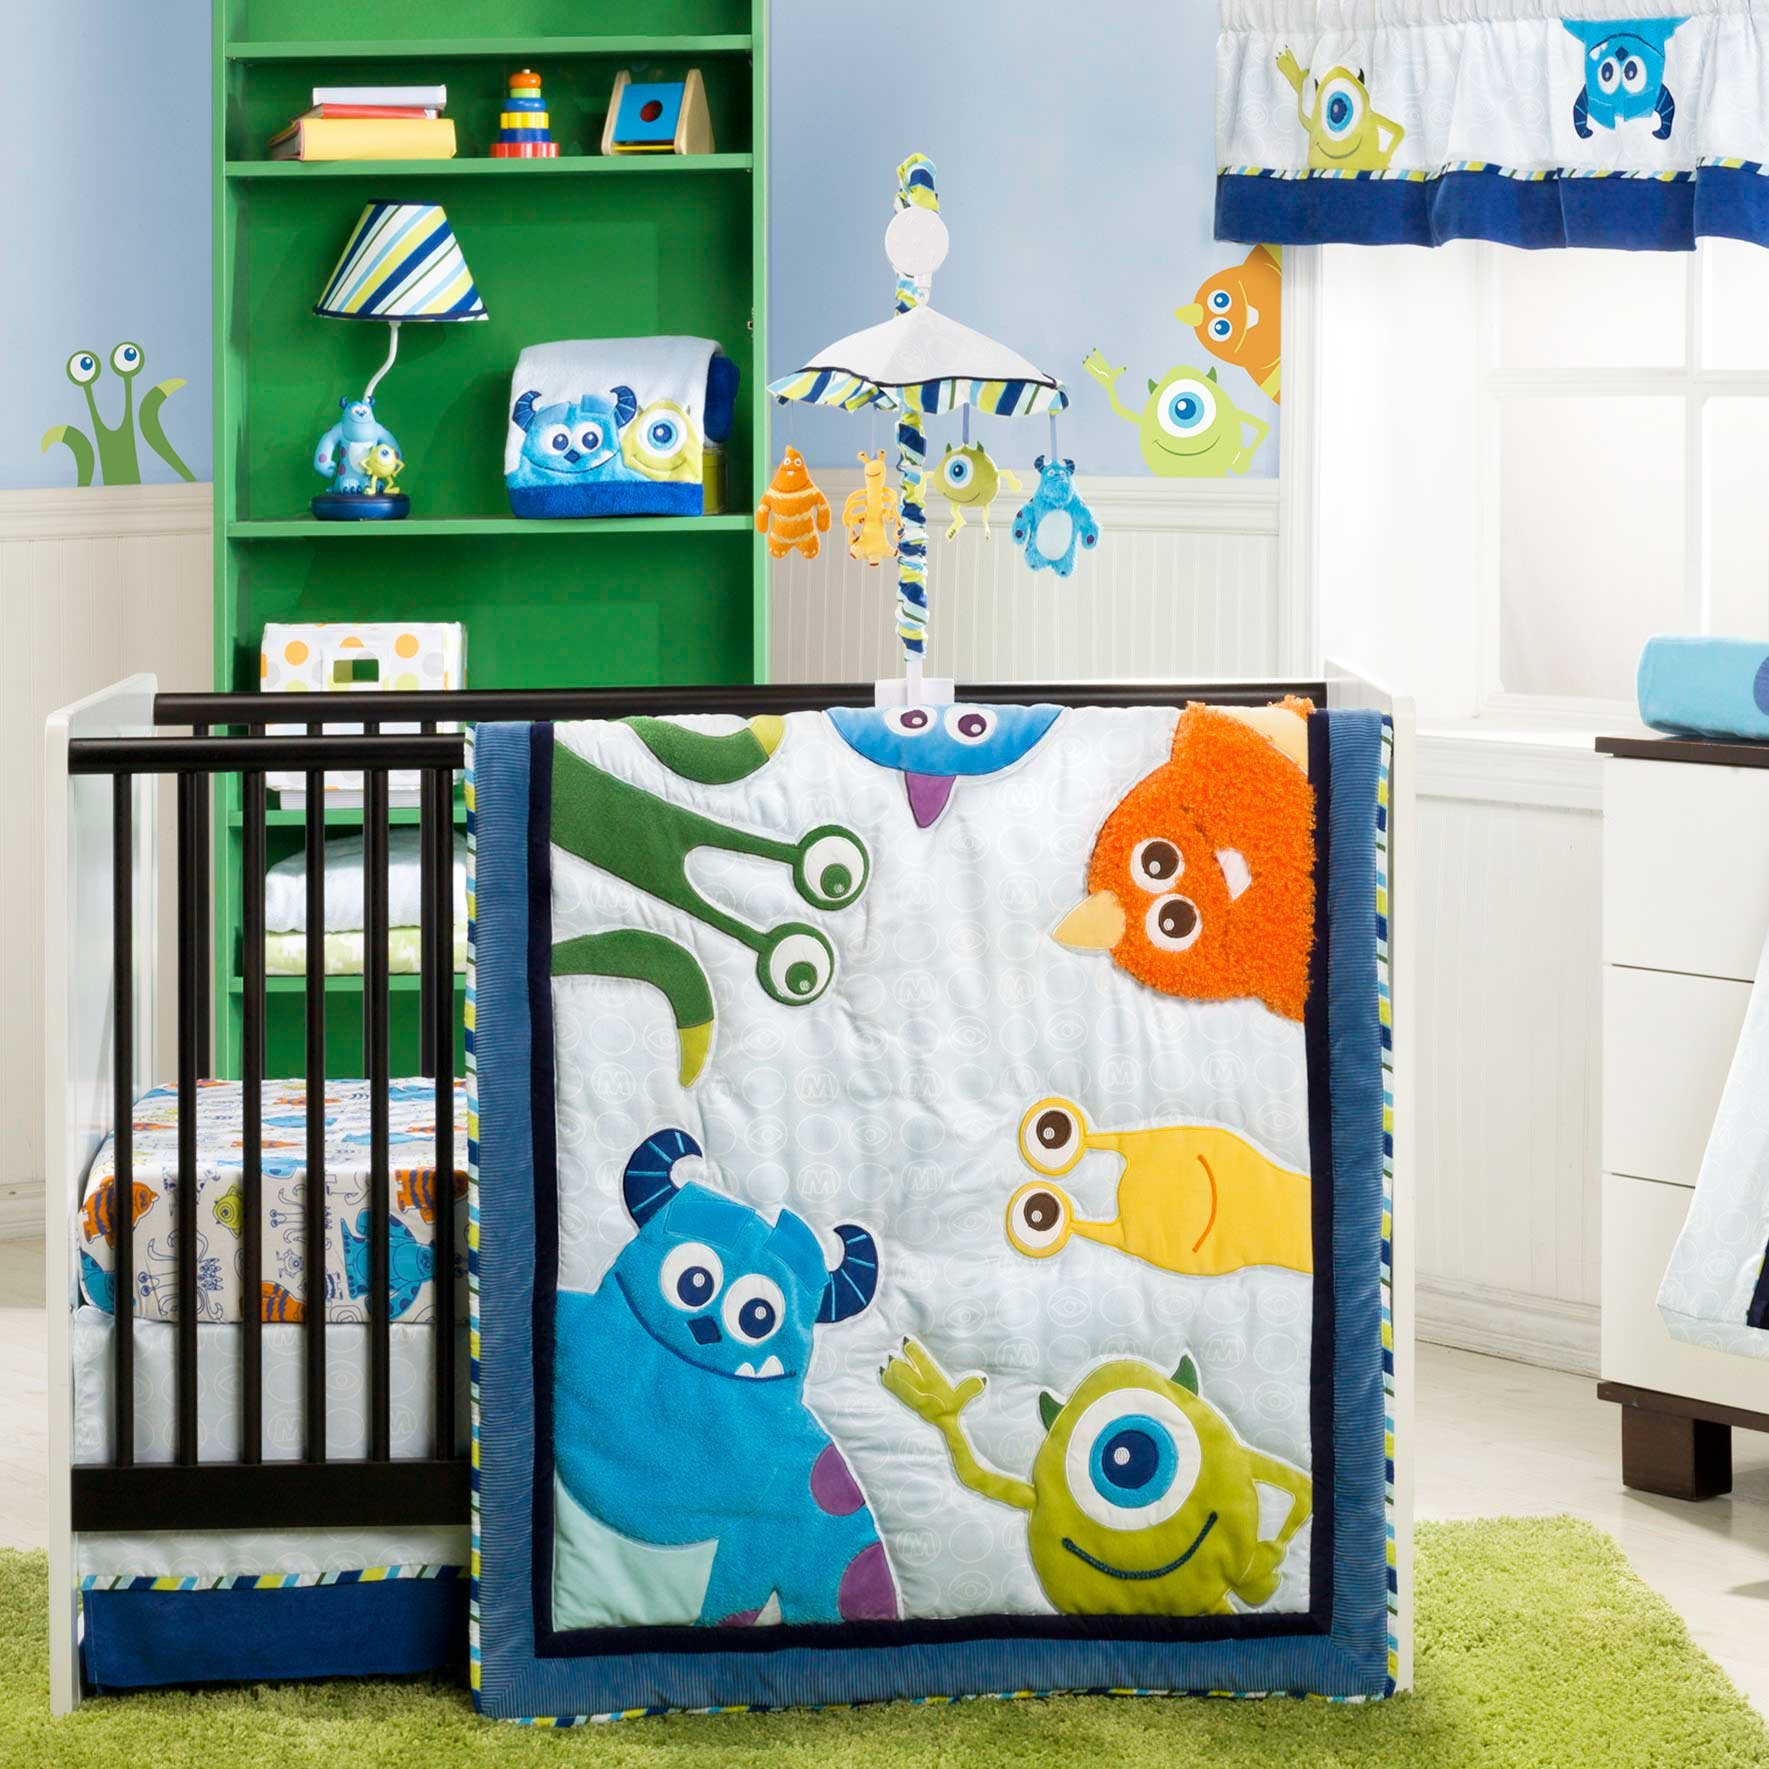 Monsters Inc. 4 Piece Baby Crib Bedding Set by Kidsline by KidsLine